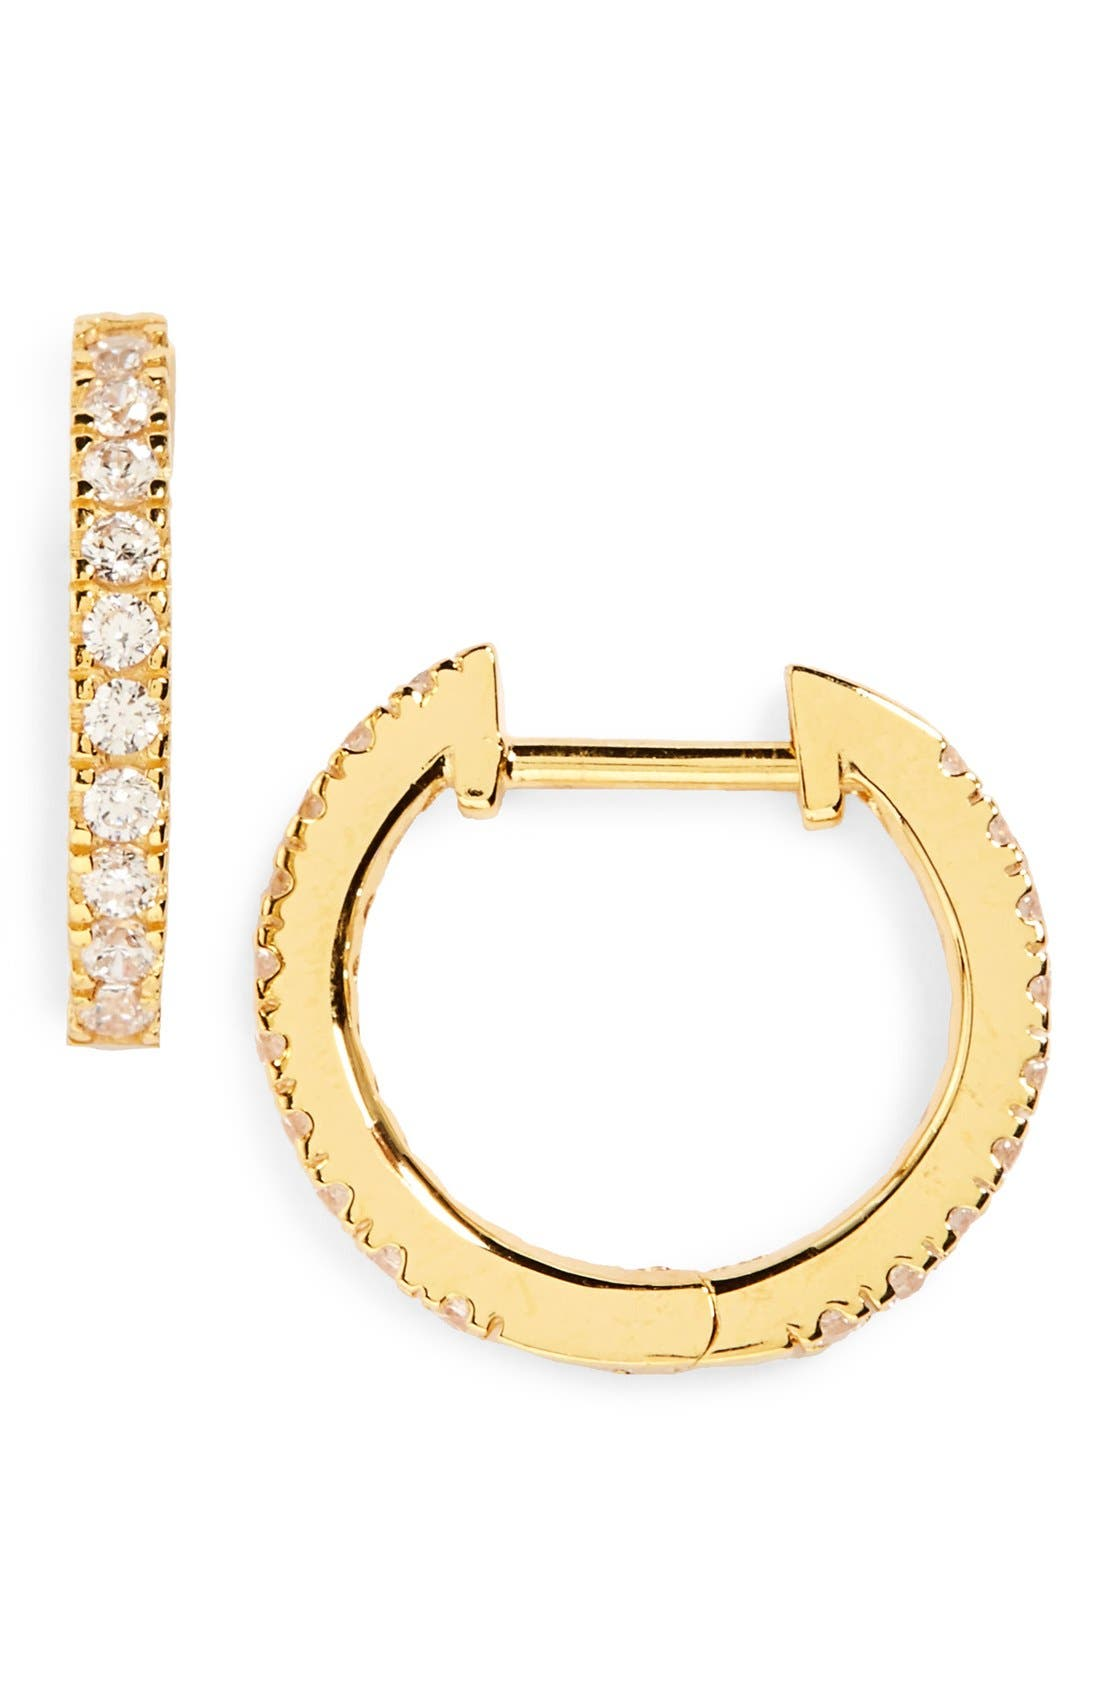 Small Hoop Earrings,                         Main,                         color, Clear- Gold